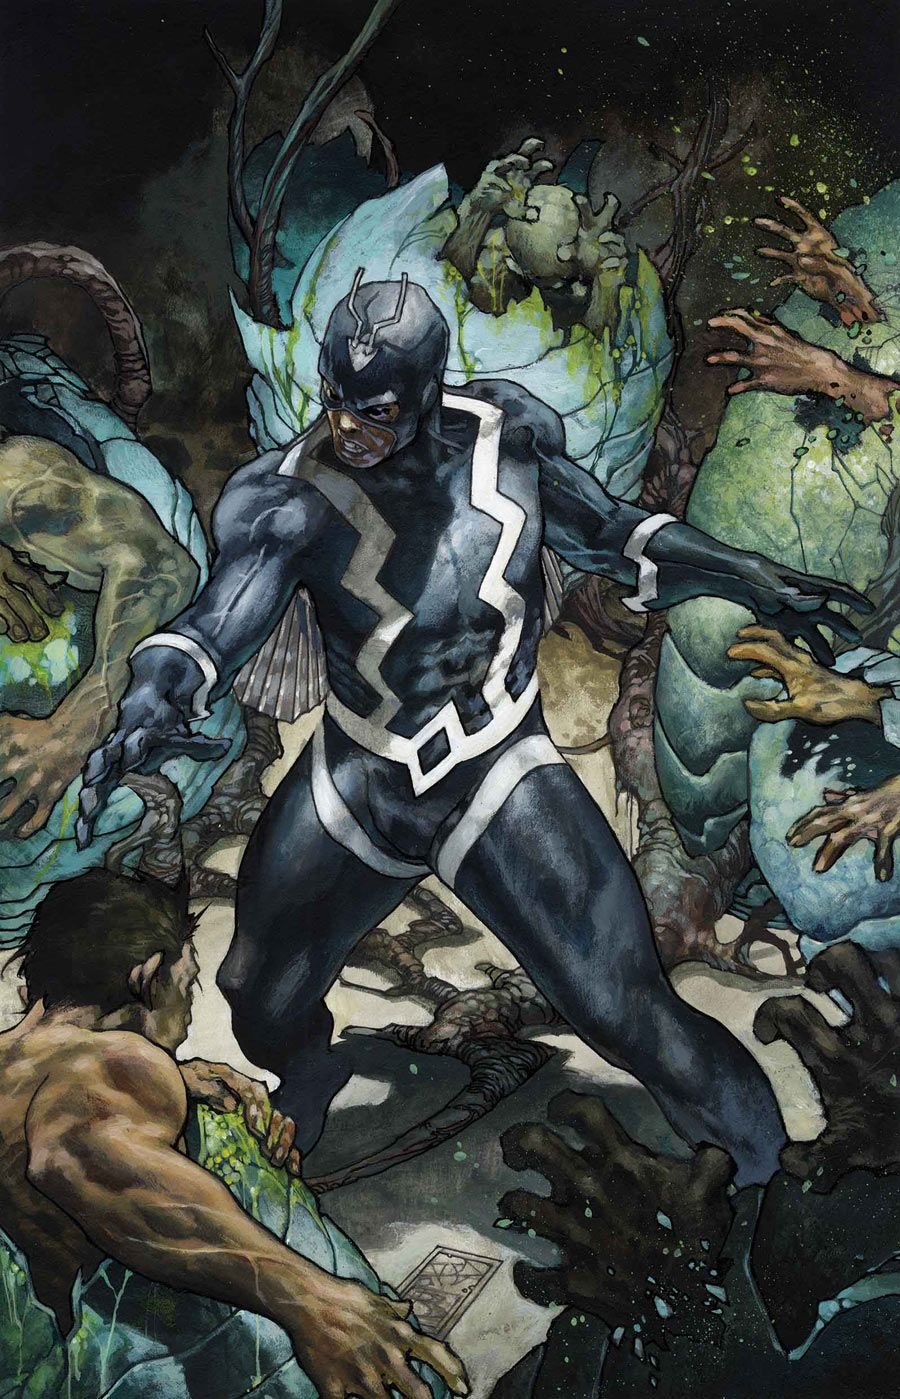 Inhumans: Black Bolt - by Simone Bianchi